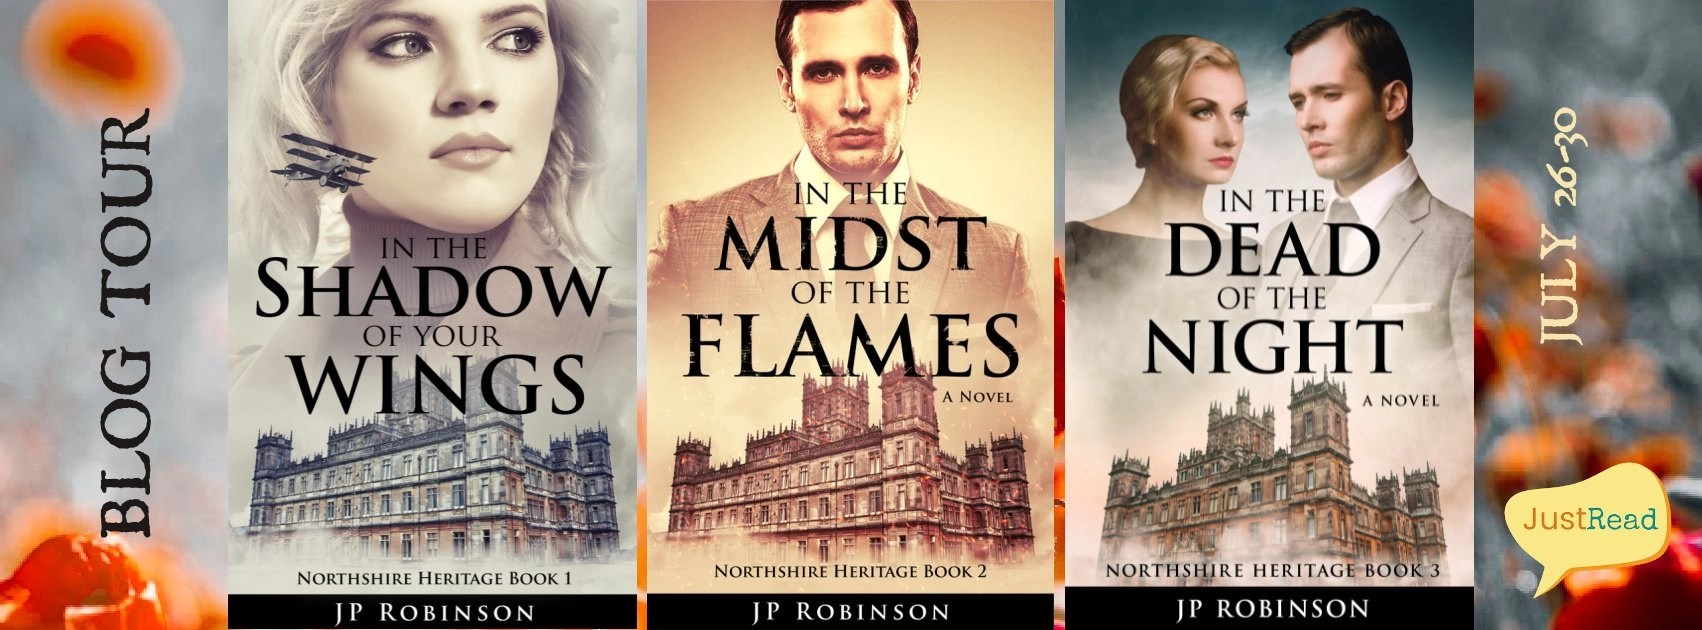 Welcome to the Northshire Heritage Blog Tour & Giveaway!